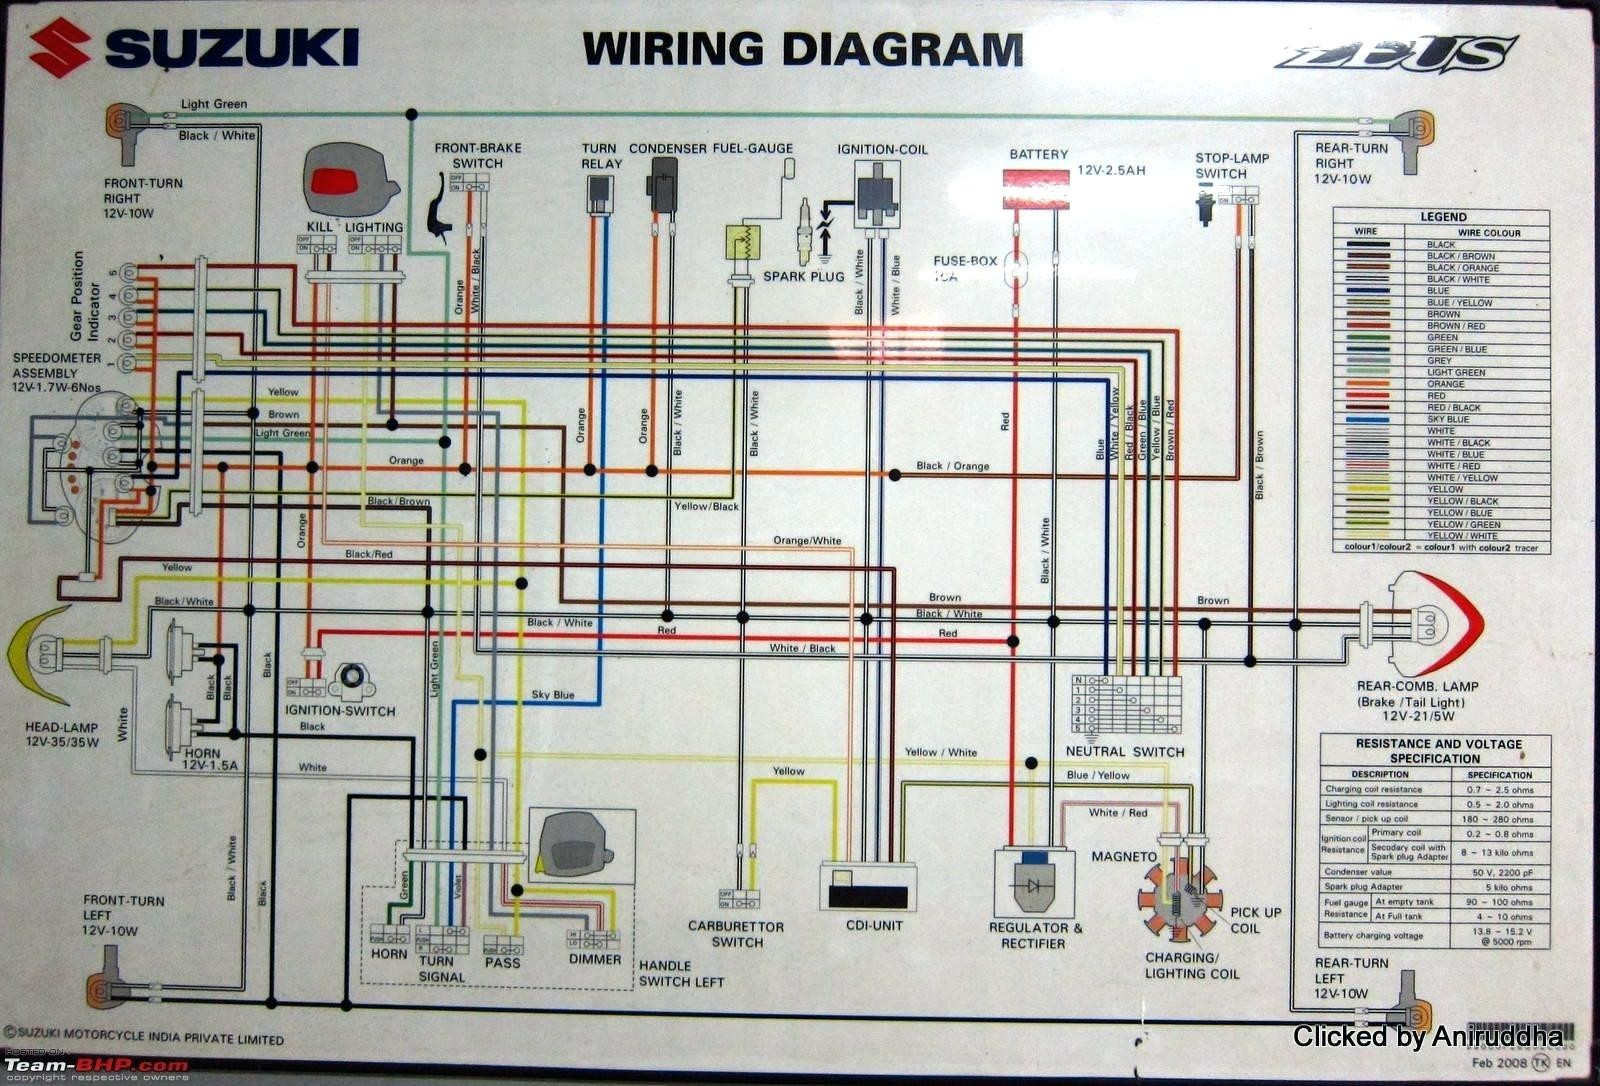 Suzuki Motorcycle Wiring Diagrams Free - Circuit Diagram Symbols •